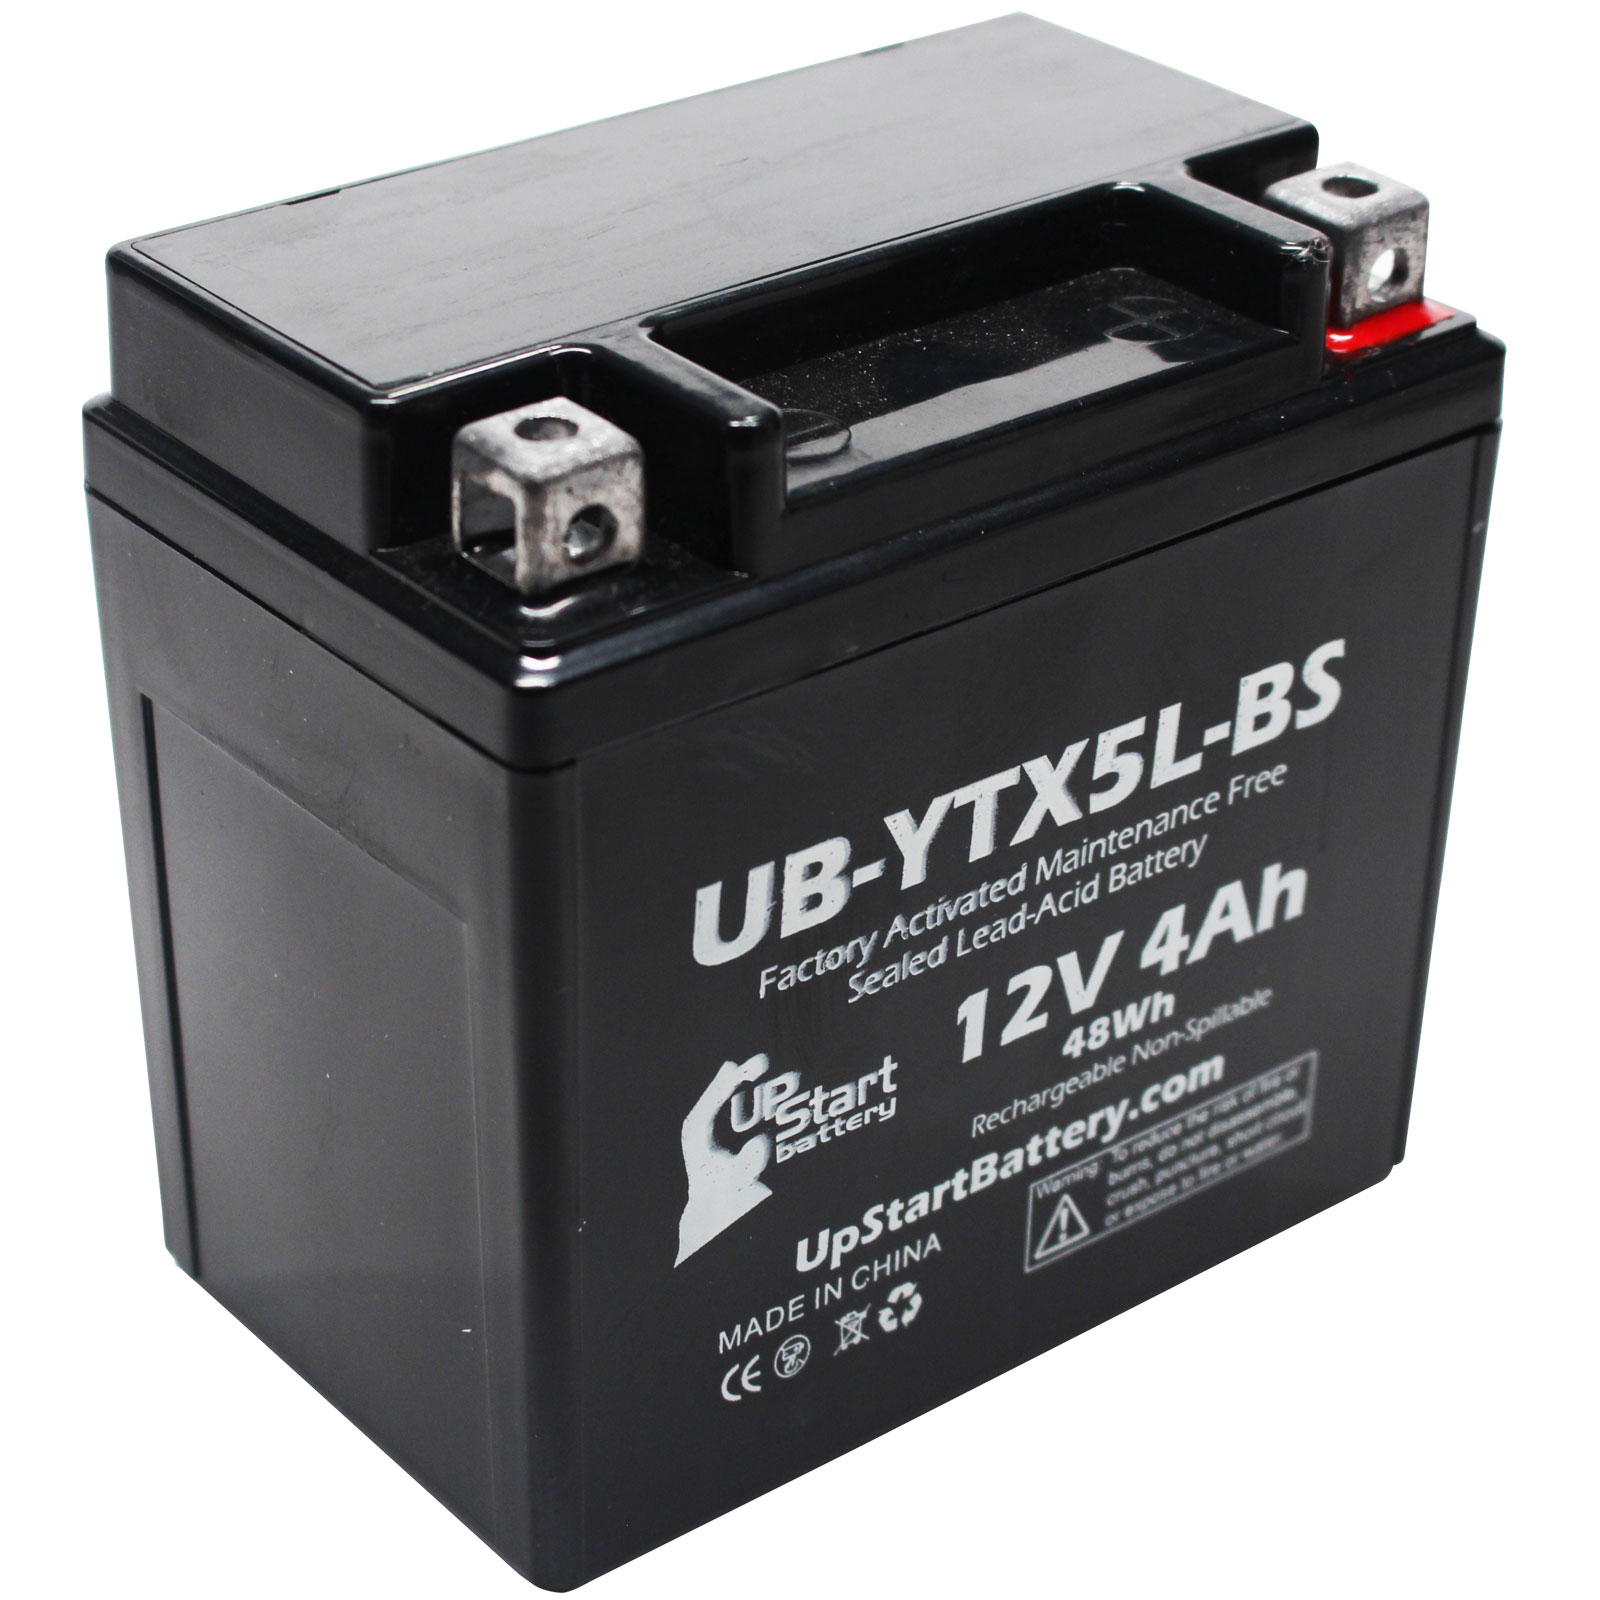 3-Pack Replacement 2004 Suzuki LT80 QuadSport 80 80CC Factory Activated ATV Battery UB-YTX5L-BS 12V 4Ah Maintenance Free